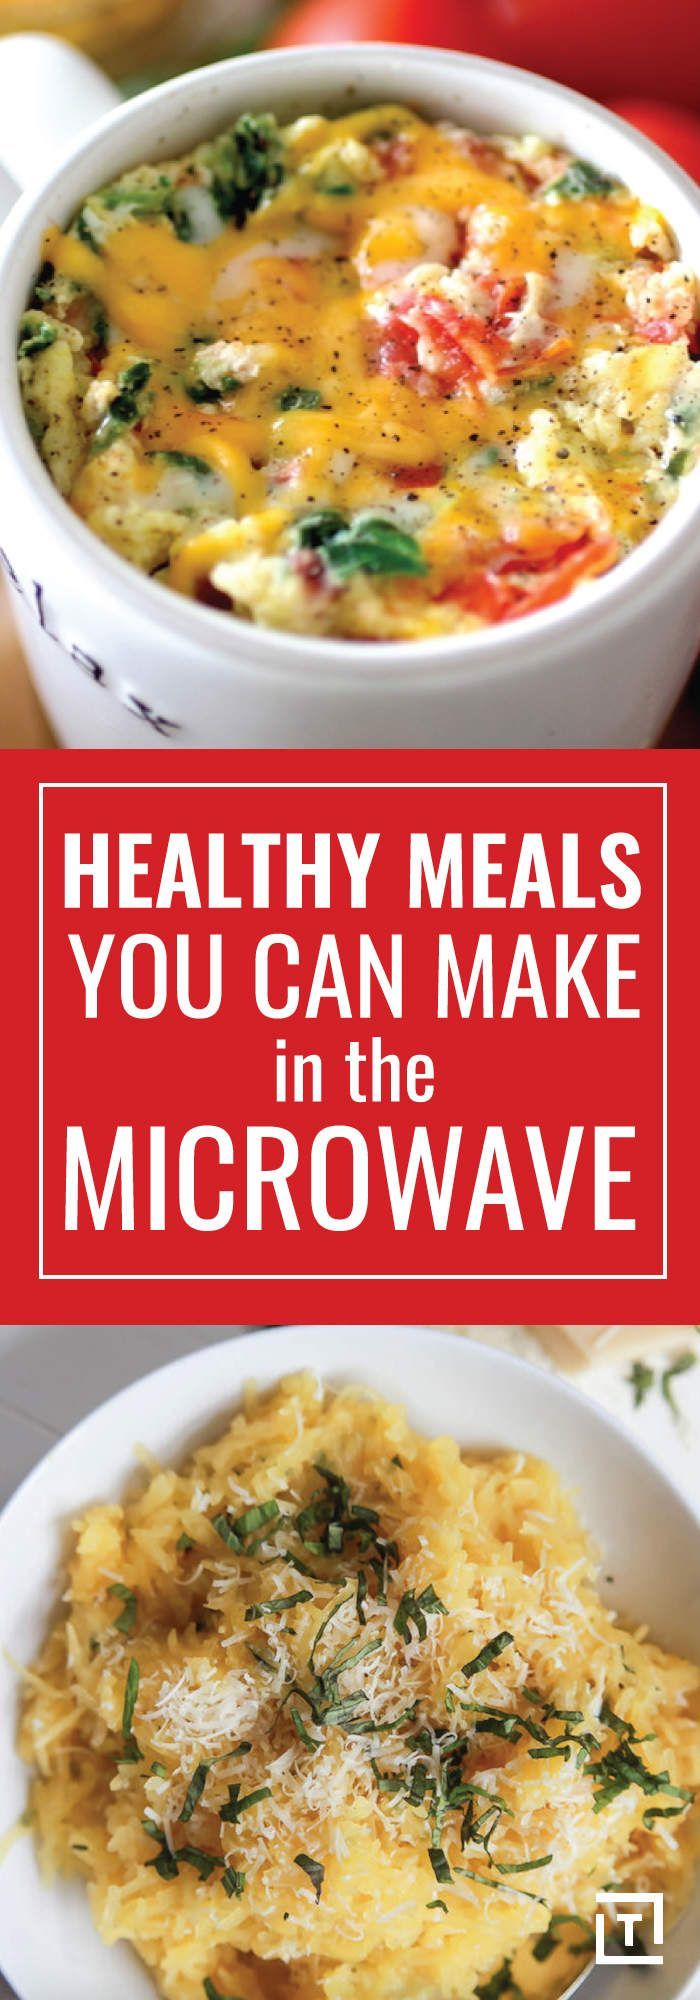 Healthy Meals You Can Make in a Microwave                                                                                                                                                                                 More